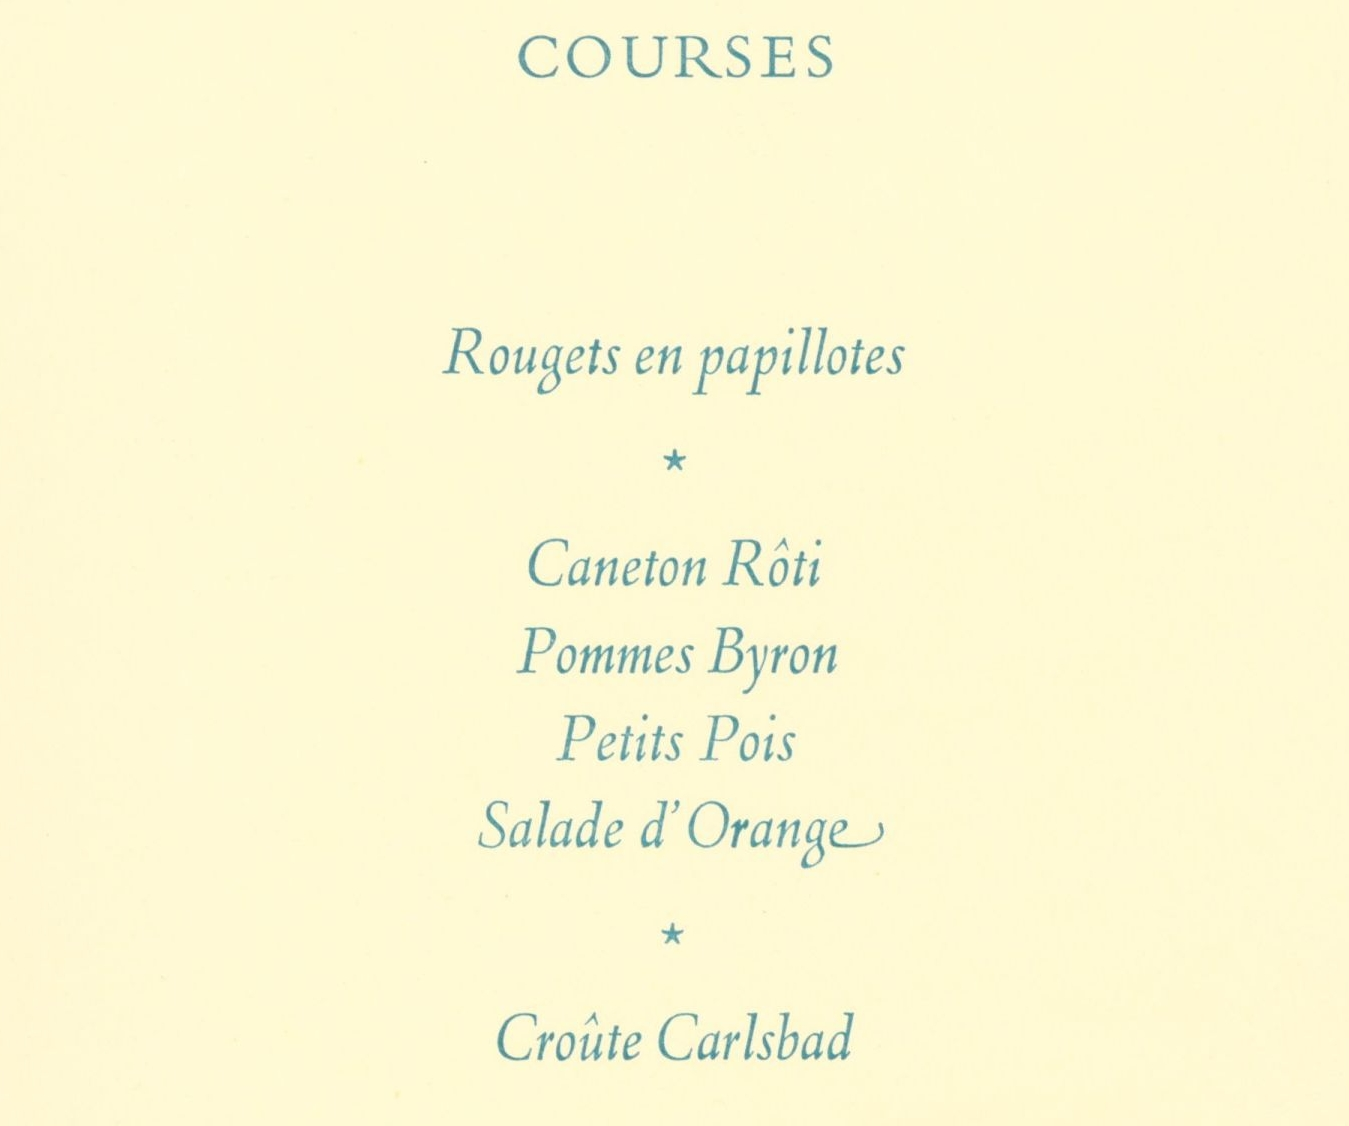 Menu for Forster's 80th birthday dinner in the Hall [KCAR/5/4/1/11]